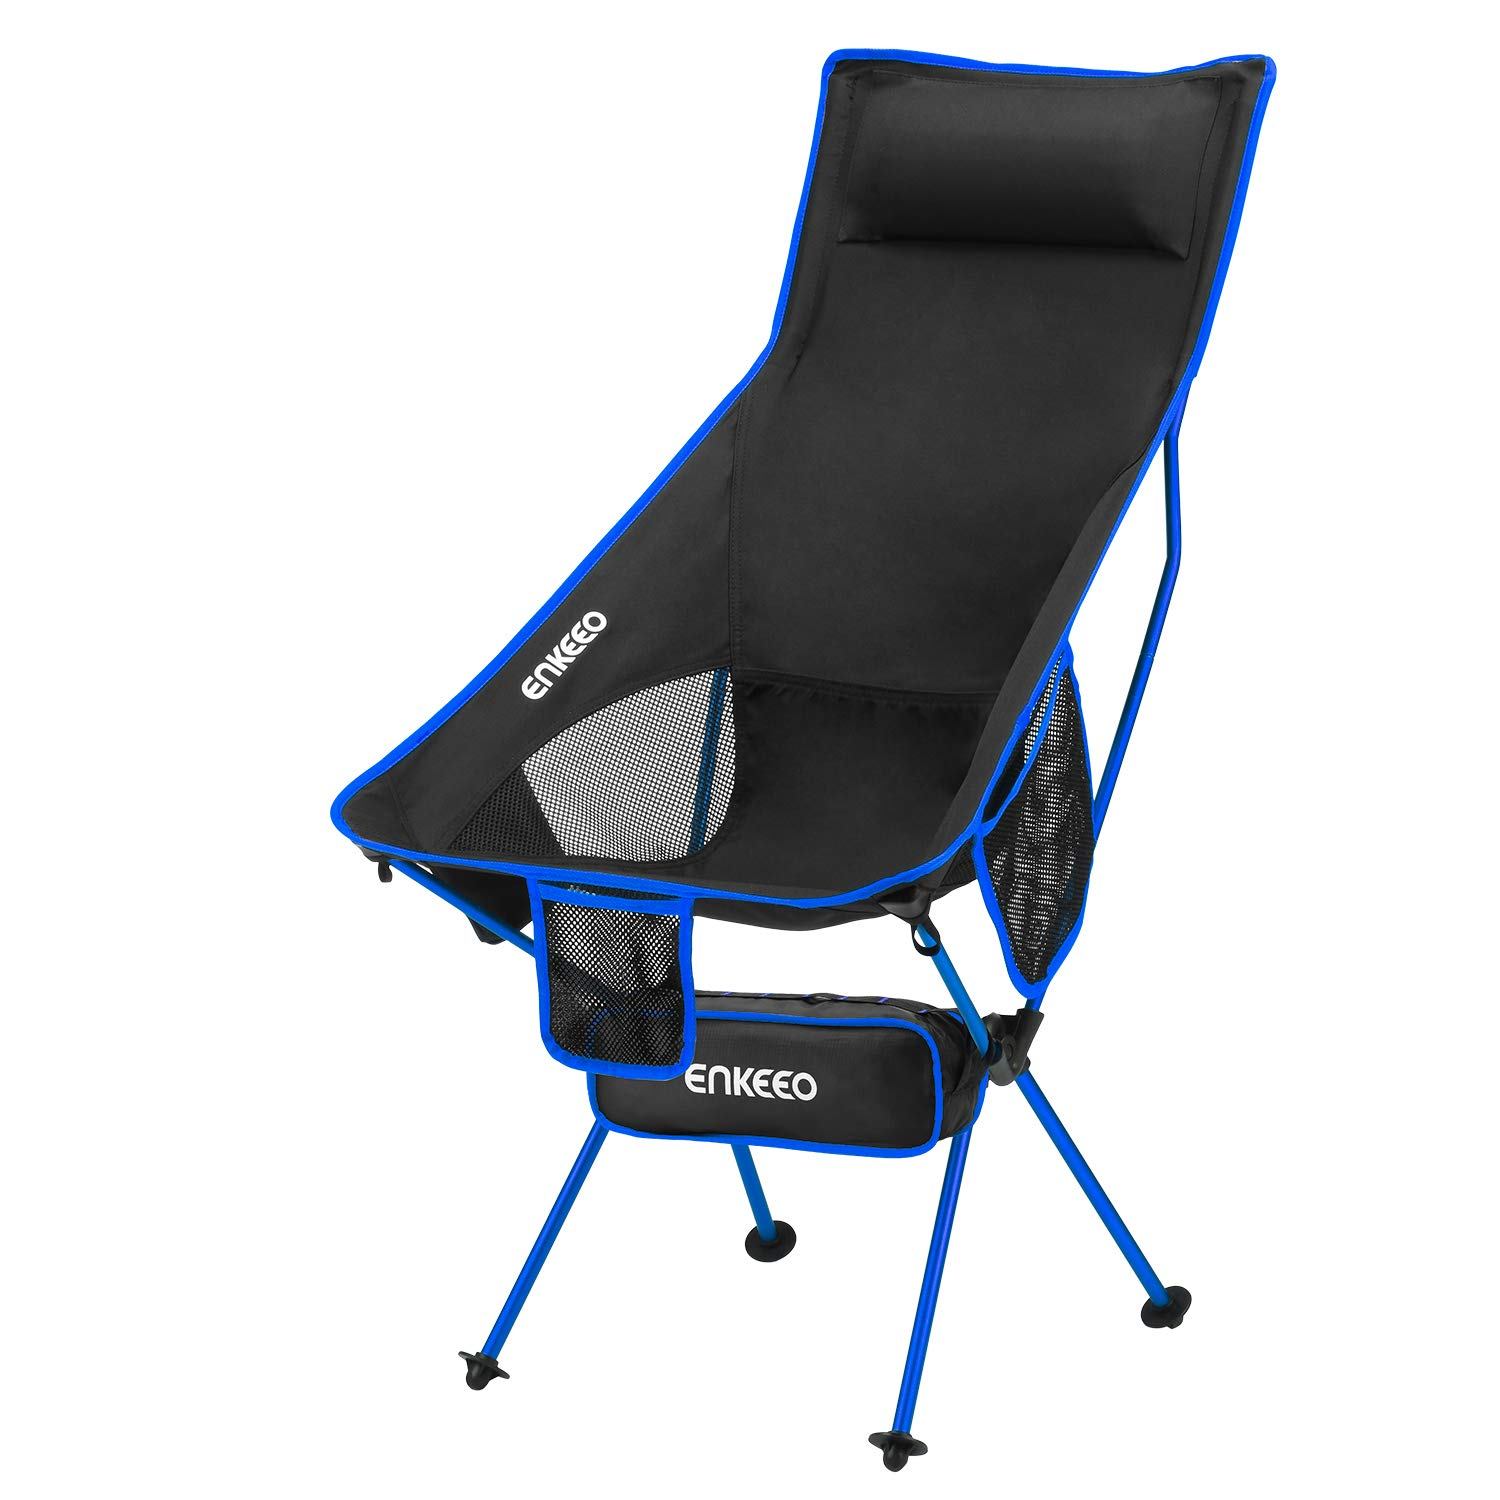 Magnificent Enkeeo Camping Folding Chair Portable Lightweight Seat With 330 Lbs Capacity Built In Pillow 3 Pockets Backrest And Carry Bag For Backpacking Ibusinesslaw Wood Chair Design Ideas Ibusinesslaworg